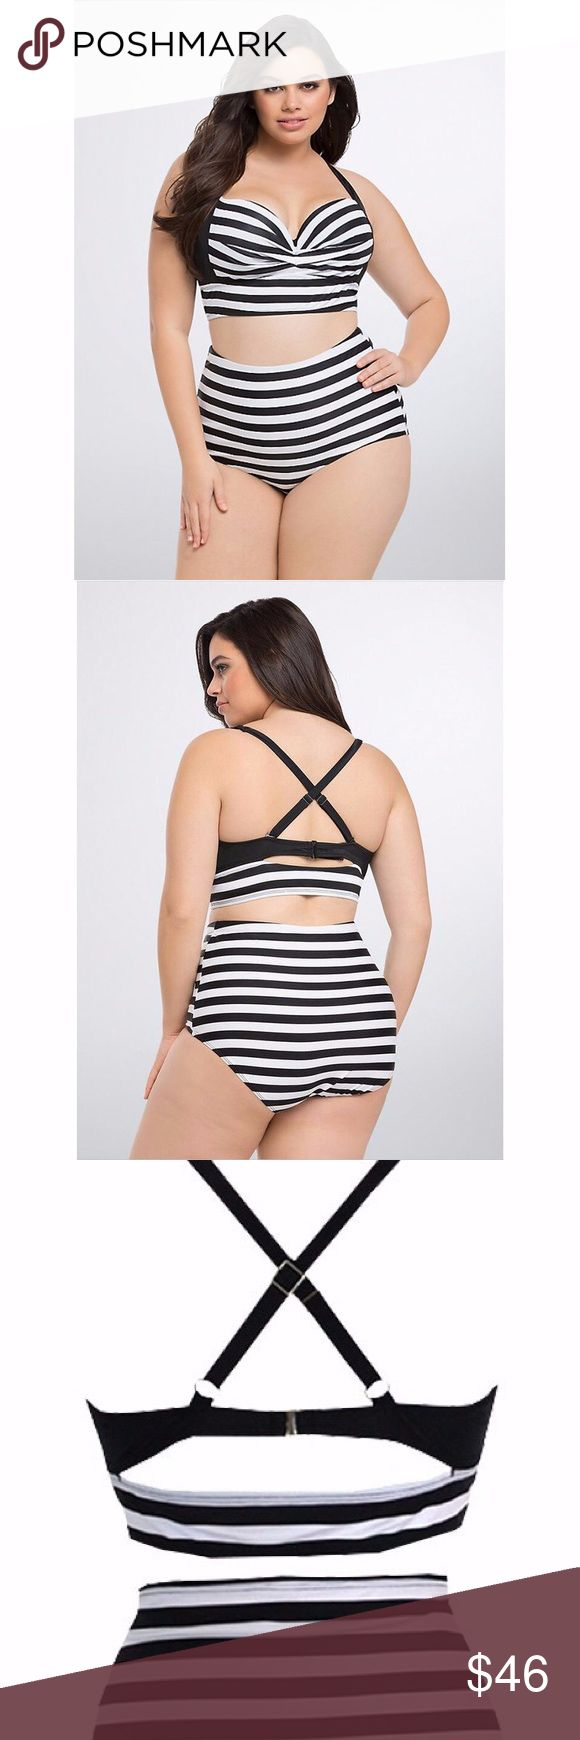 High waist two piece bikini. New High waist two piece bikini. New. Black And White striped with adjustable straps, padded cups, and underwire.  high waist bottoms with flattering pleating.. Lots of stretch as :82%nylon 18%spandex. Size XXXL but runs smaller, fits like 14/16 (please refer to size chart.) Swim Bikinis